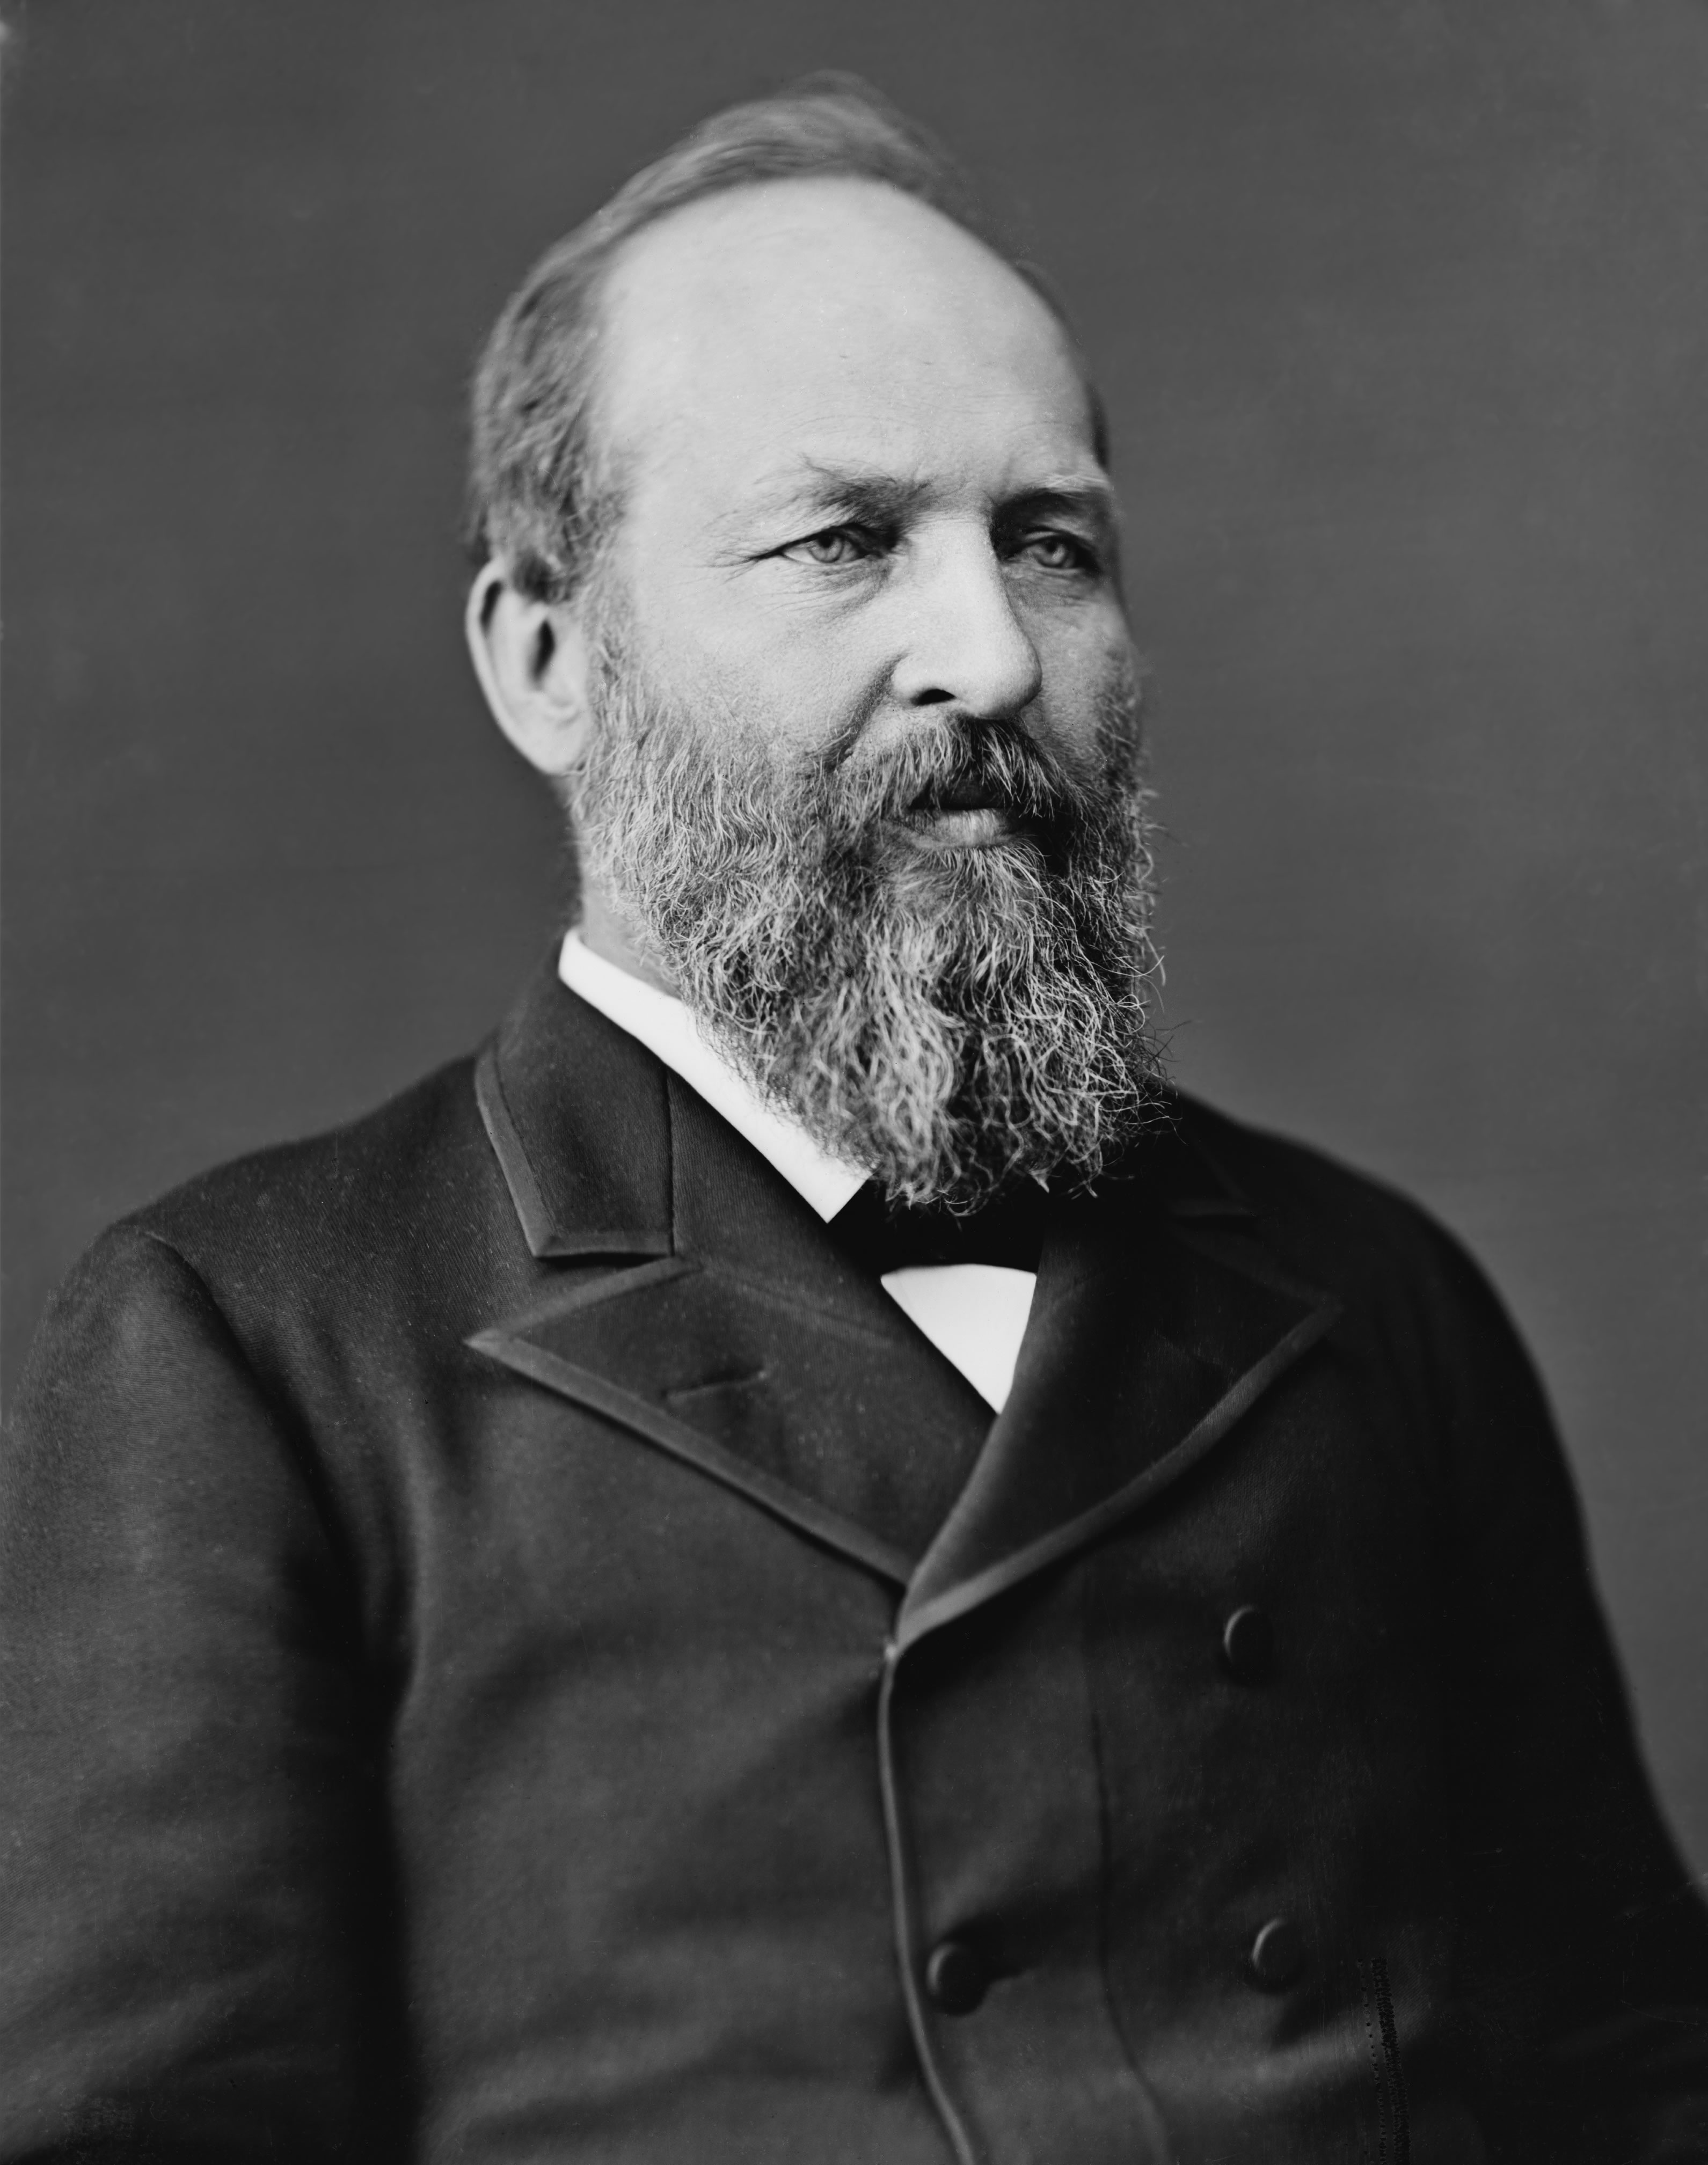 http://upload.wikimedia.org/wikipedia/commons/1/1f/James_Abram_Garfield,_photo_portrait_seated.jpg